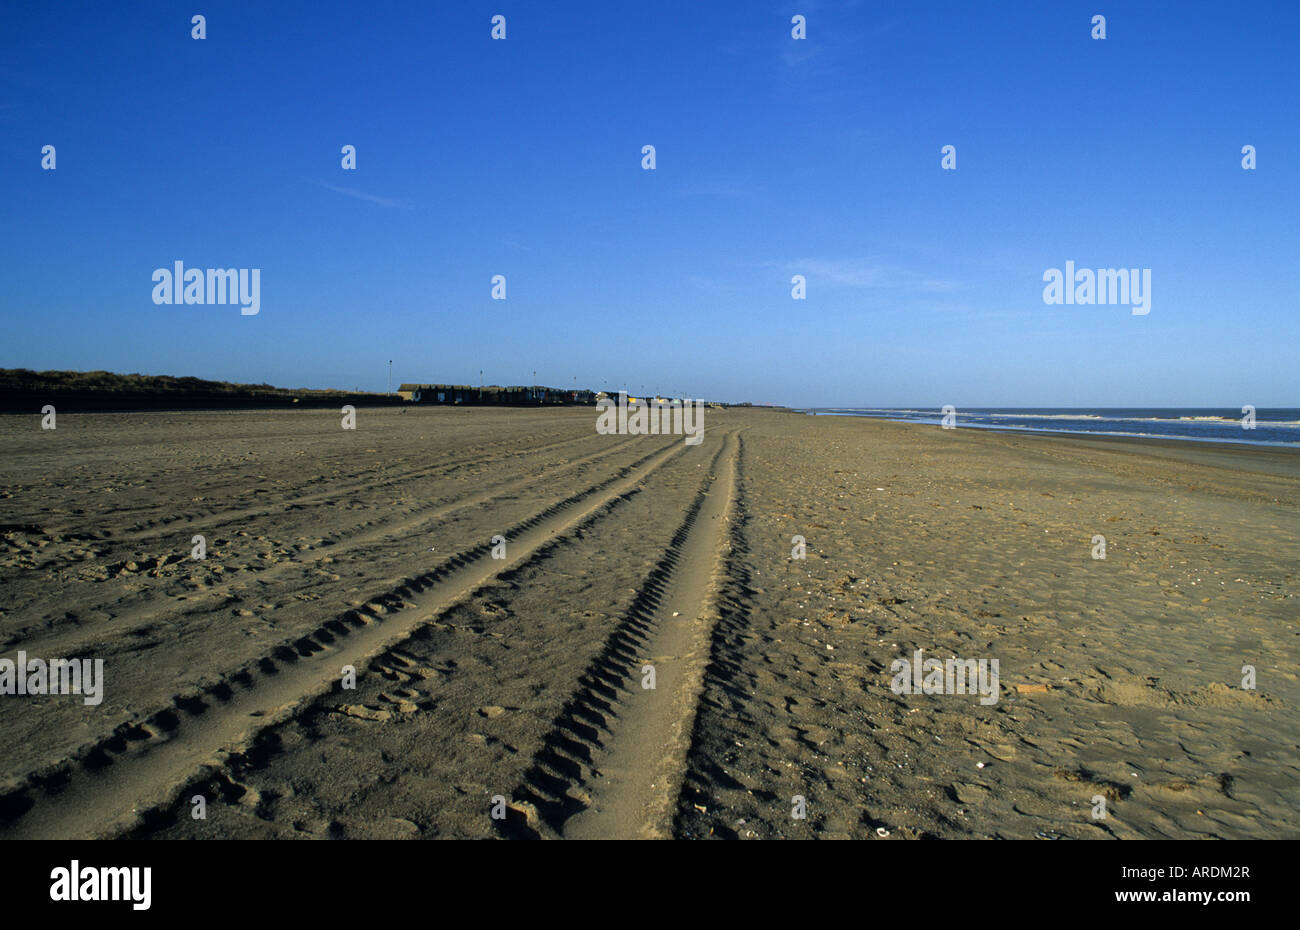 Tracks in the sand, Sutton on Sea Lincolnshire England UK - Stock Image